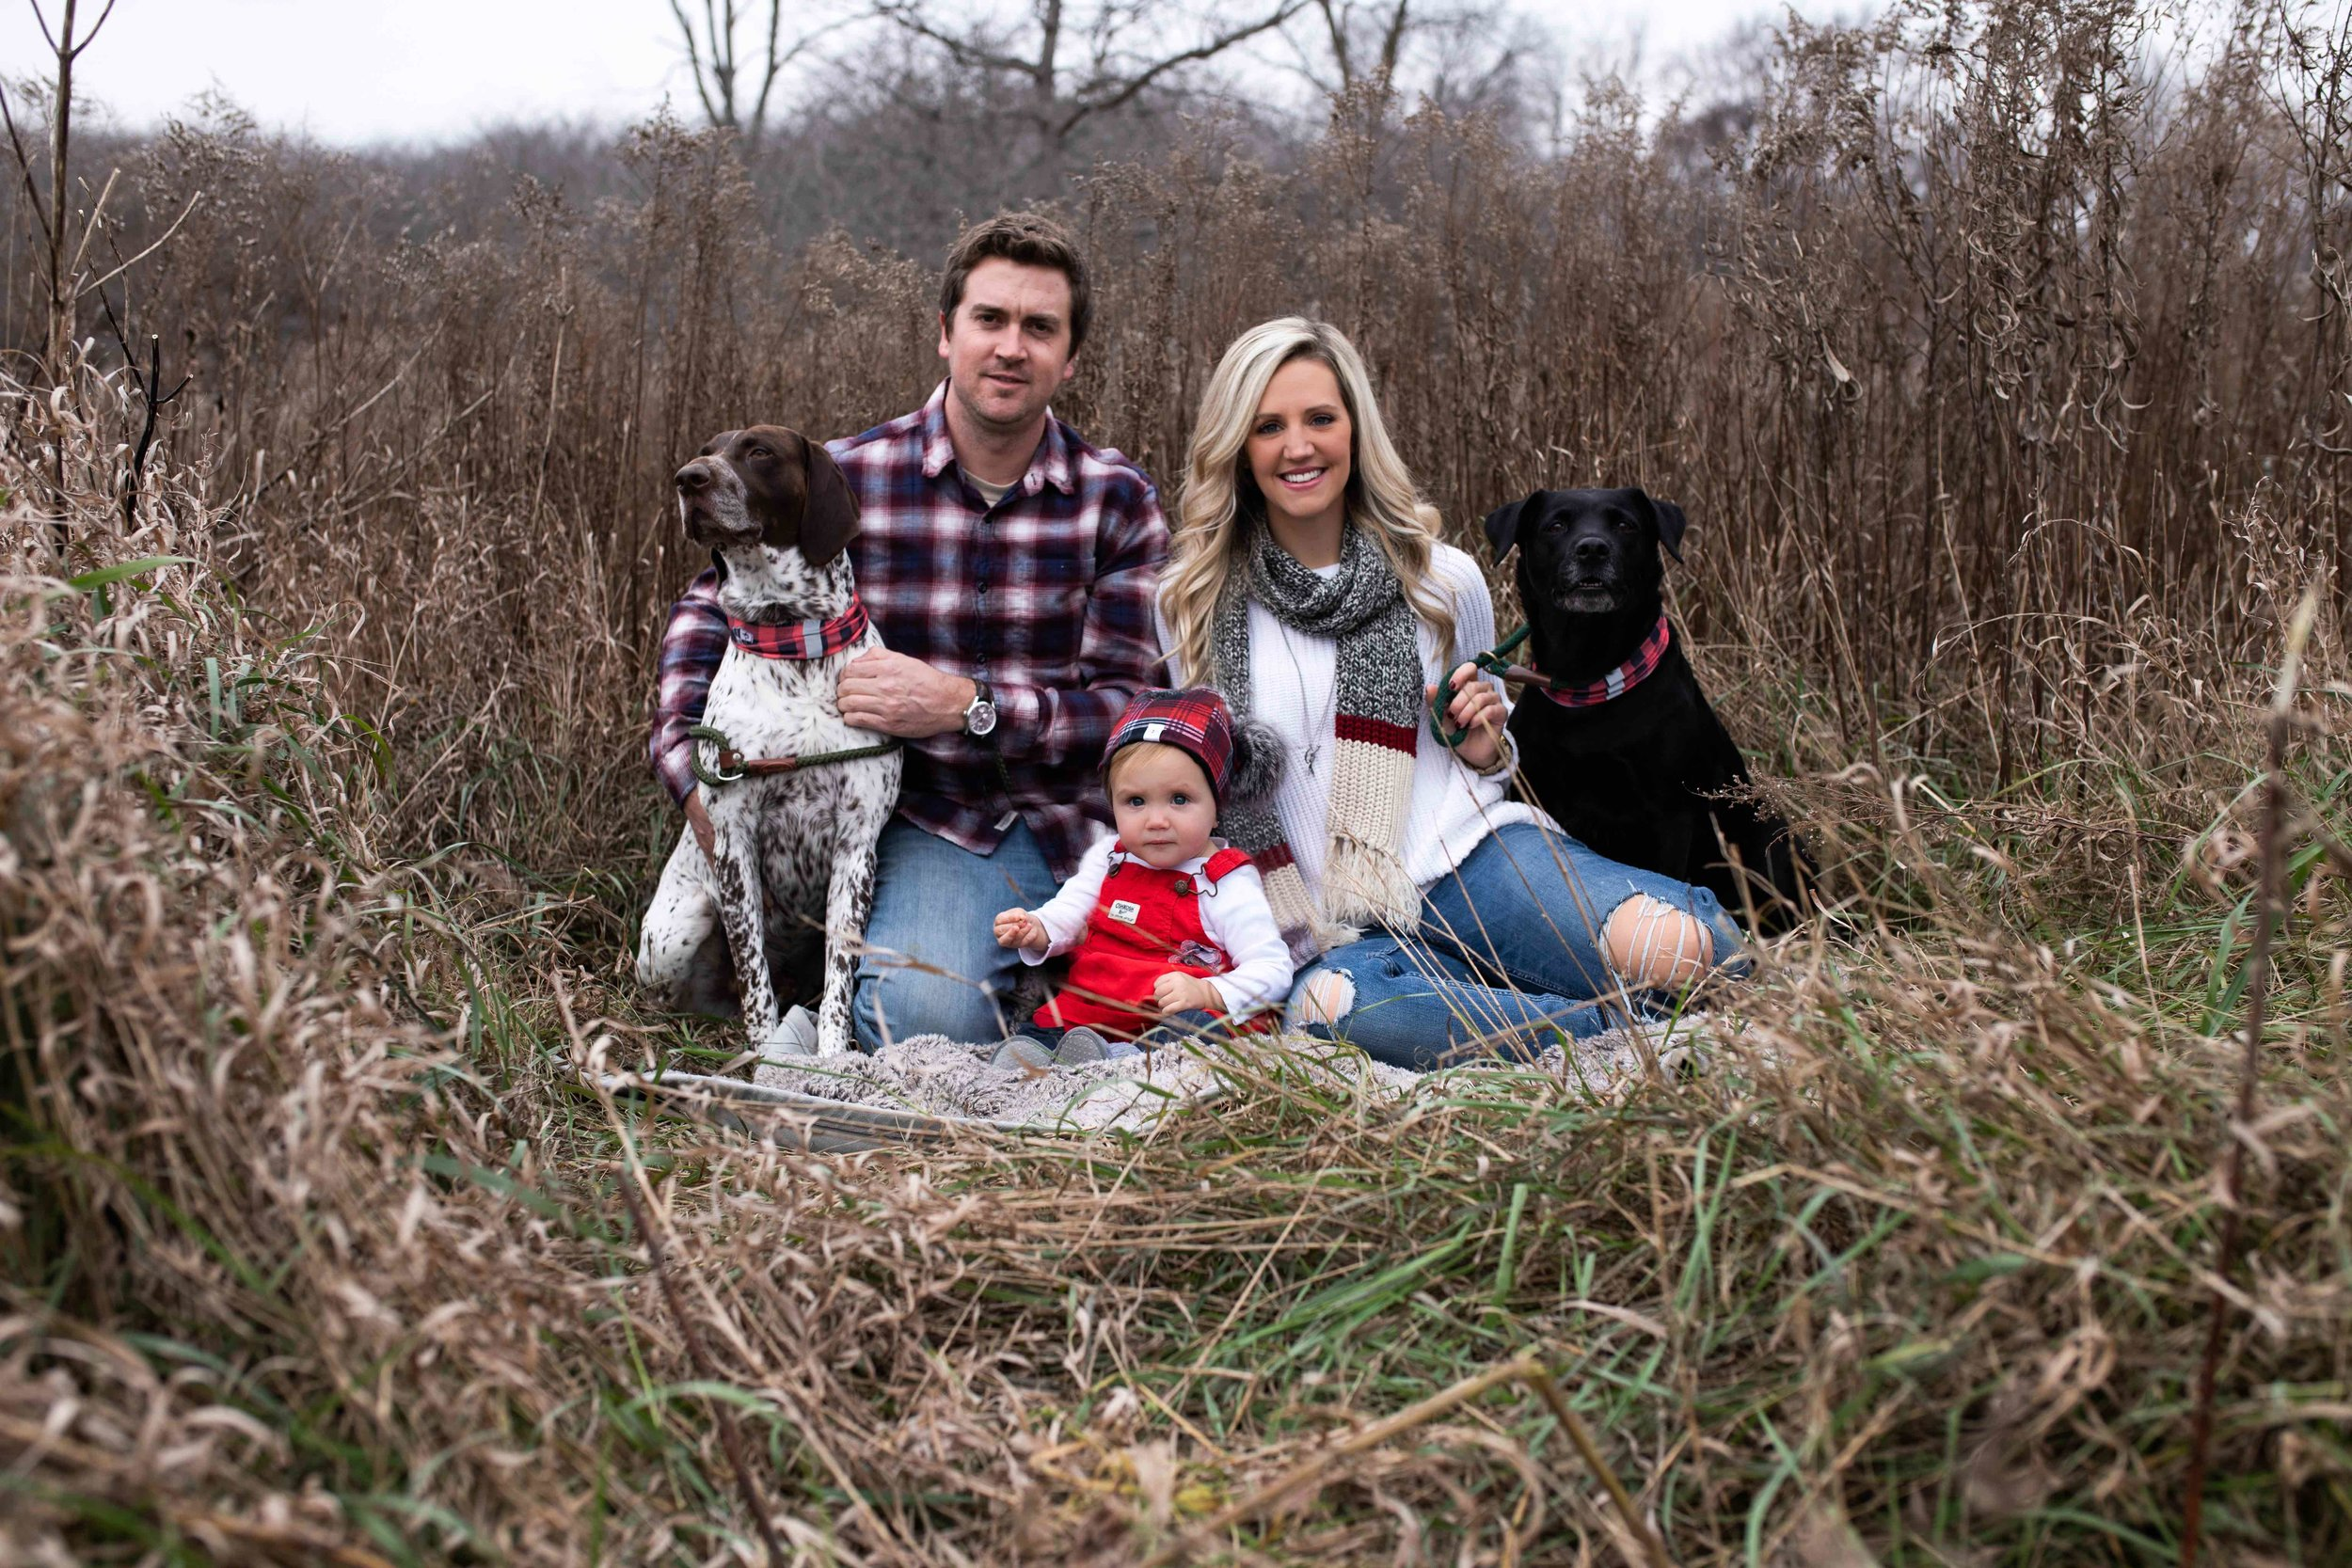 Jodie-Aldred-Photography-Chatham-Kent-Elgin-Middlesex-London-Ontario-Farm-Family-Dogs.jpg